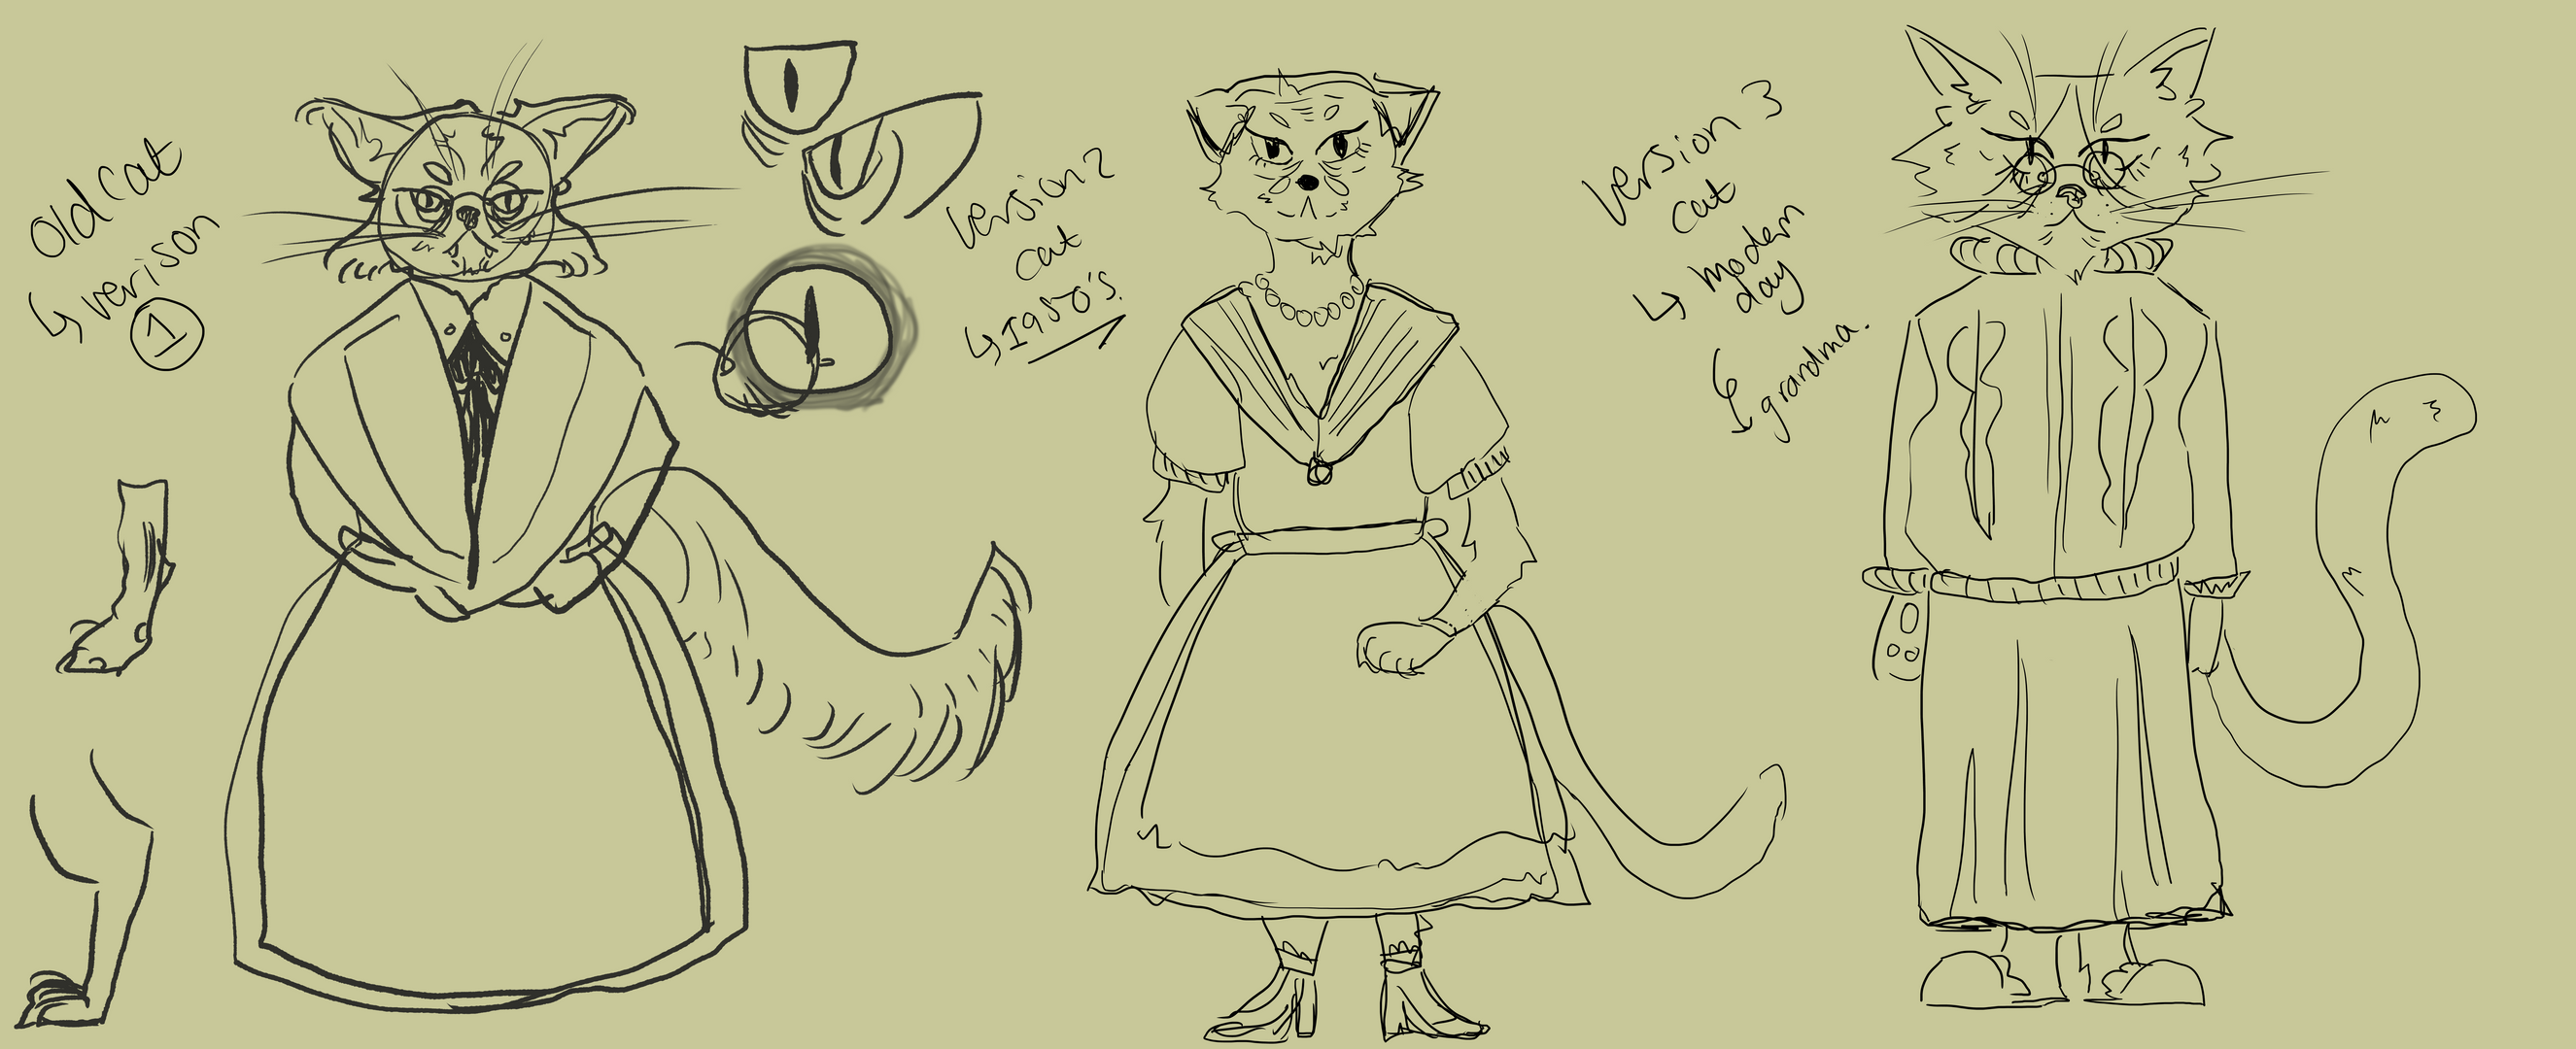 Old sly cat - First sketches